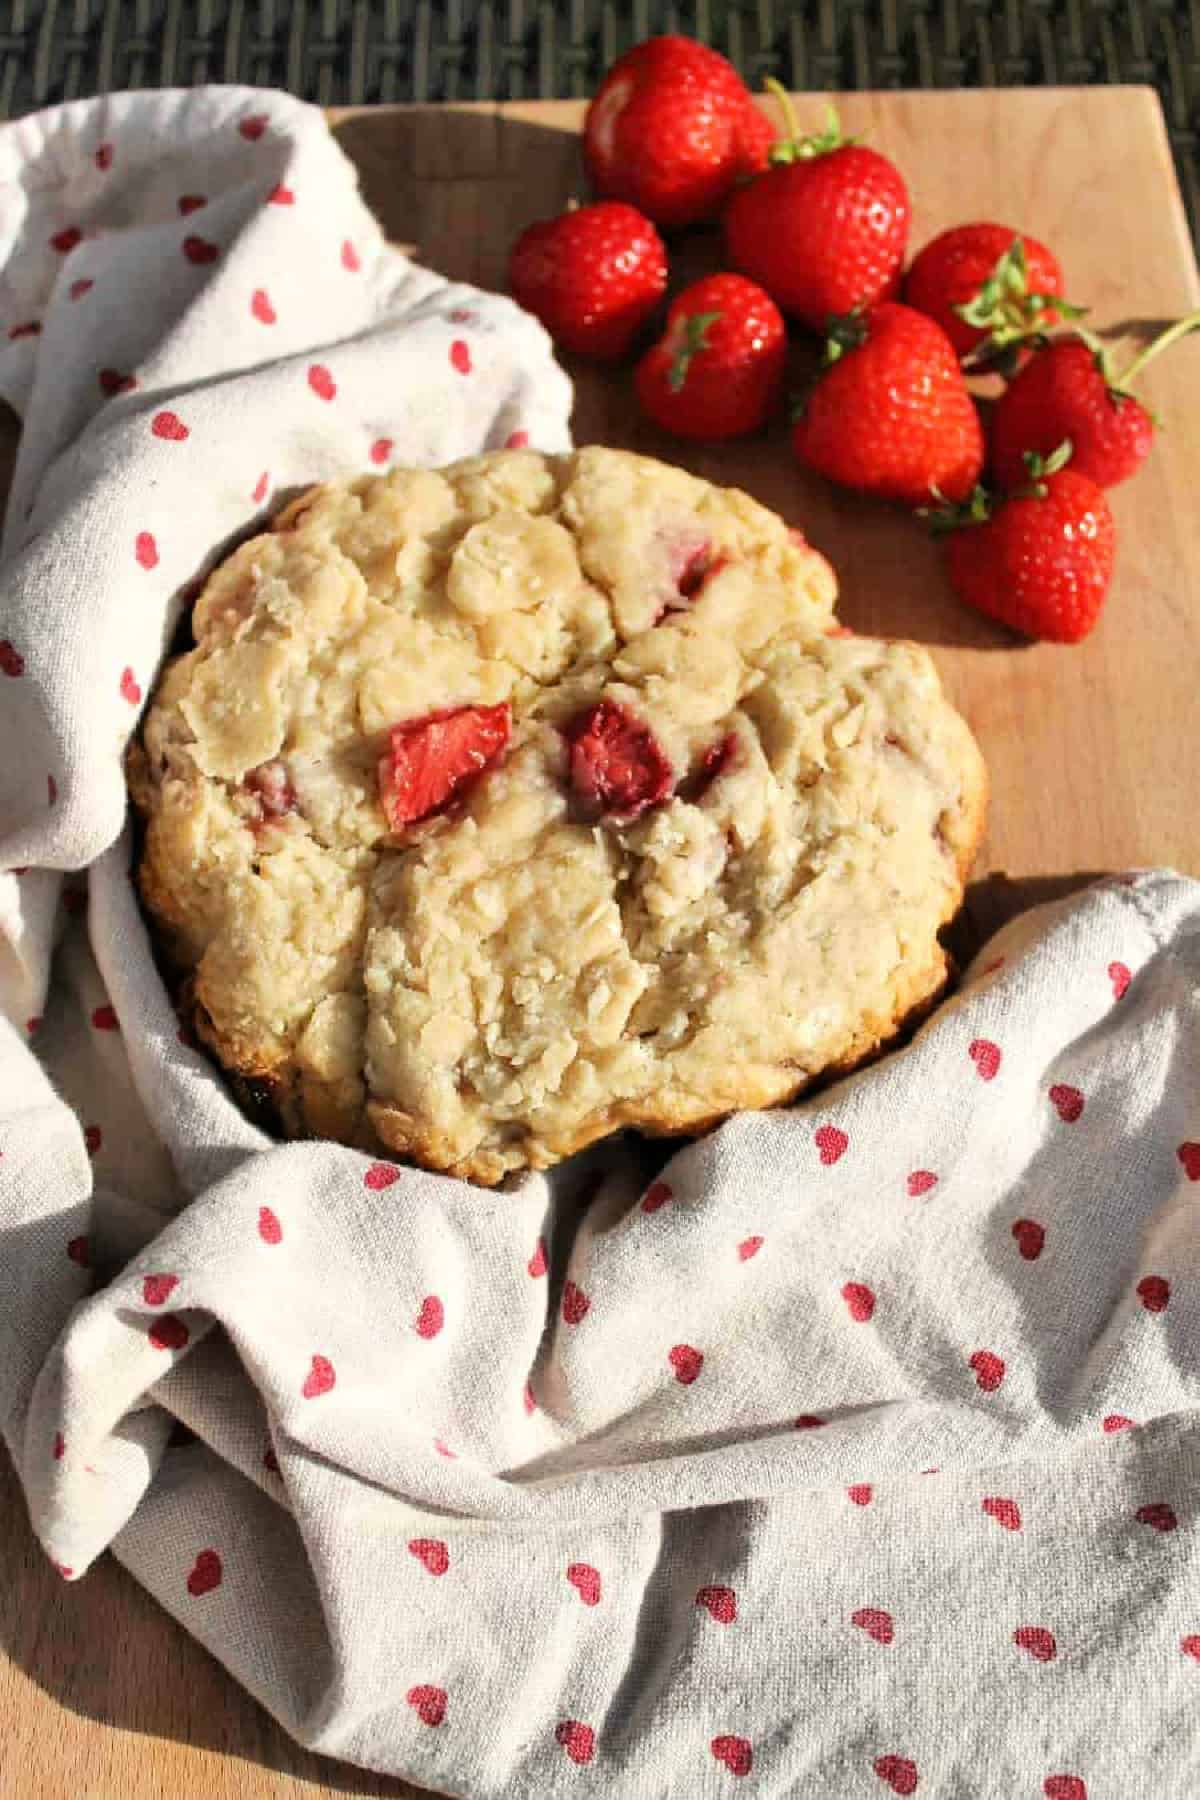 Large scone with strawberries on a board on a tea towel, with strawberries to the side.